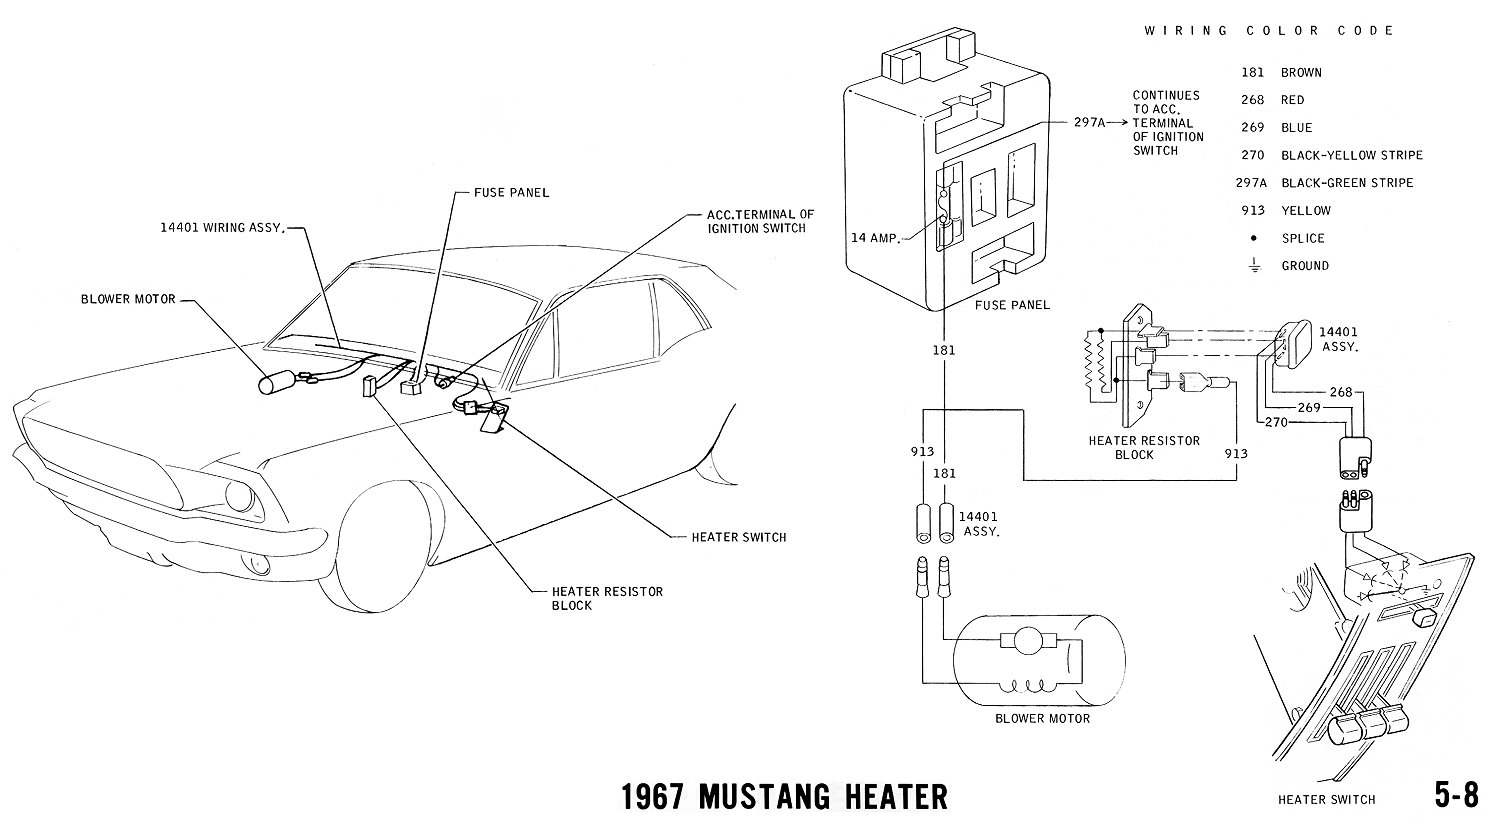 1967 Mustang Heater. Pictorial and Schematic